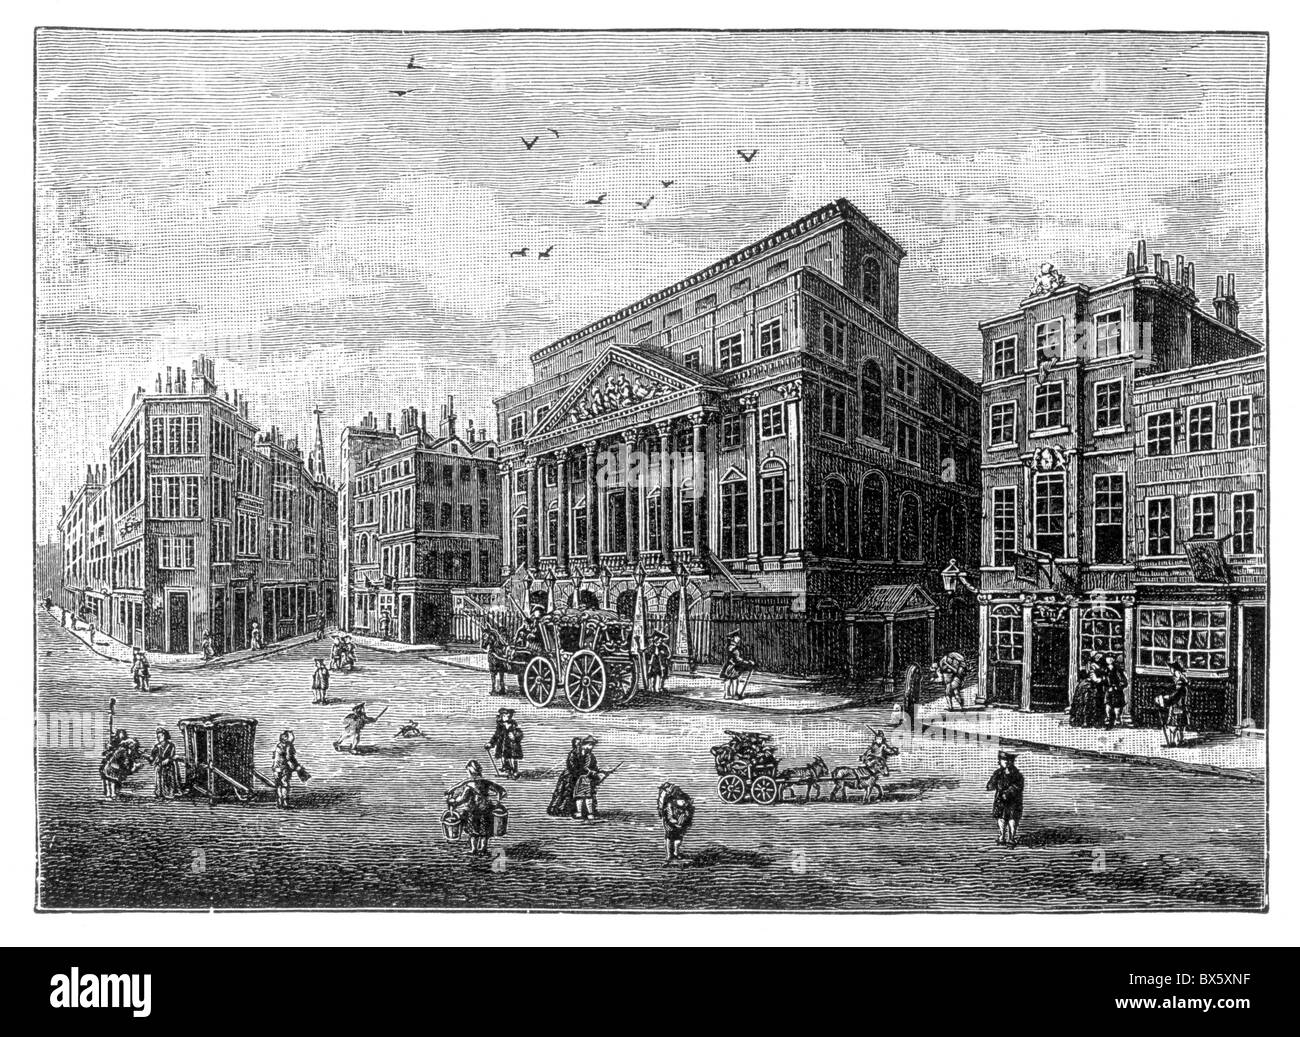 The Mansion House, London circa 1750; Black and White Illustration; - Stock Image